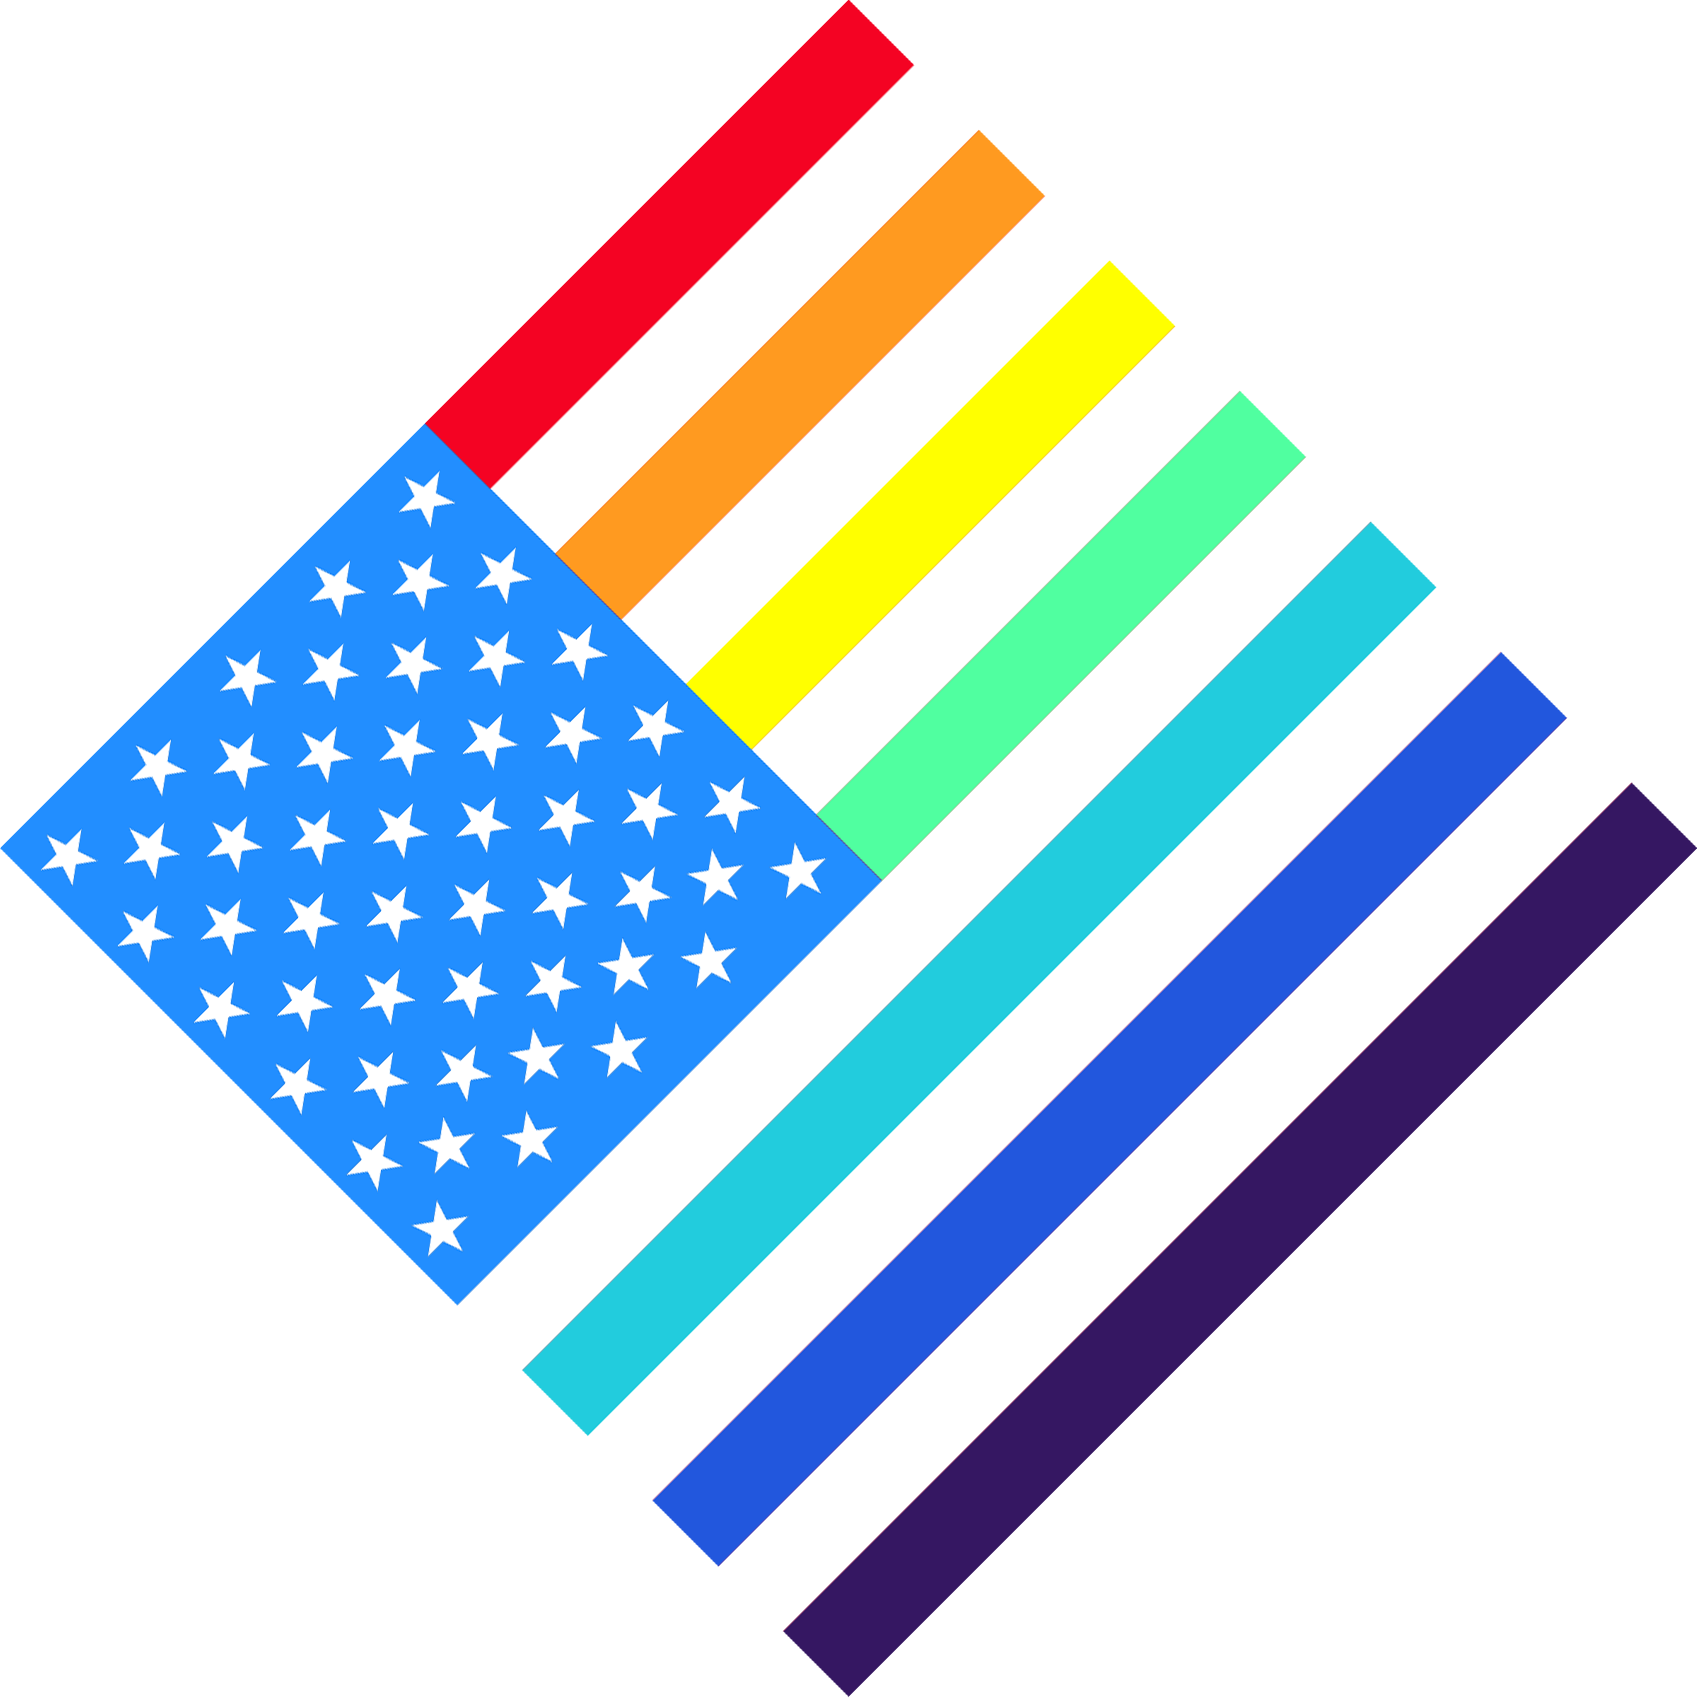 American Pride Flag Filter - For Facebook profile pictures